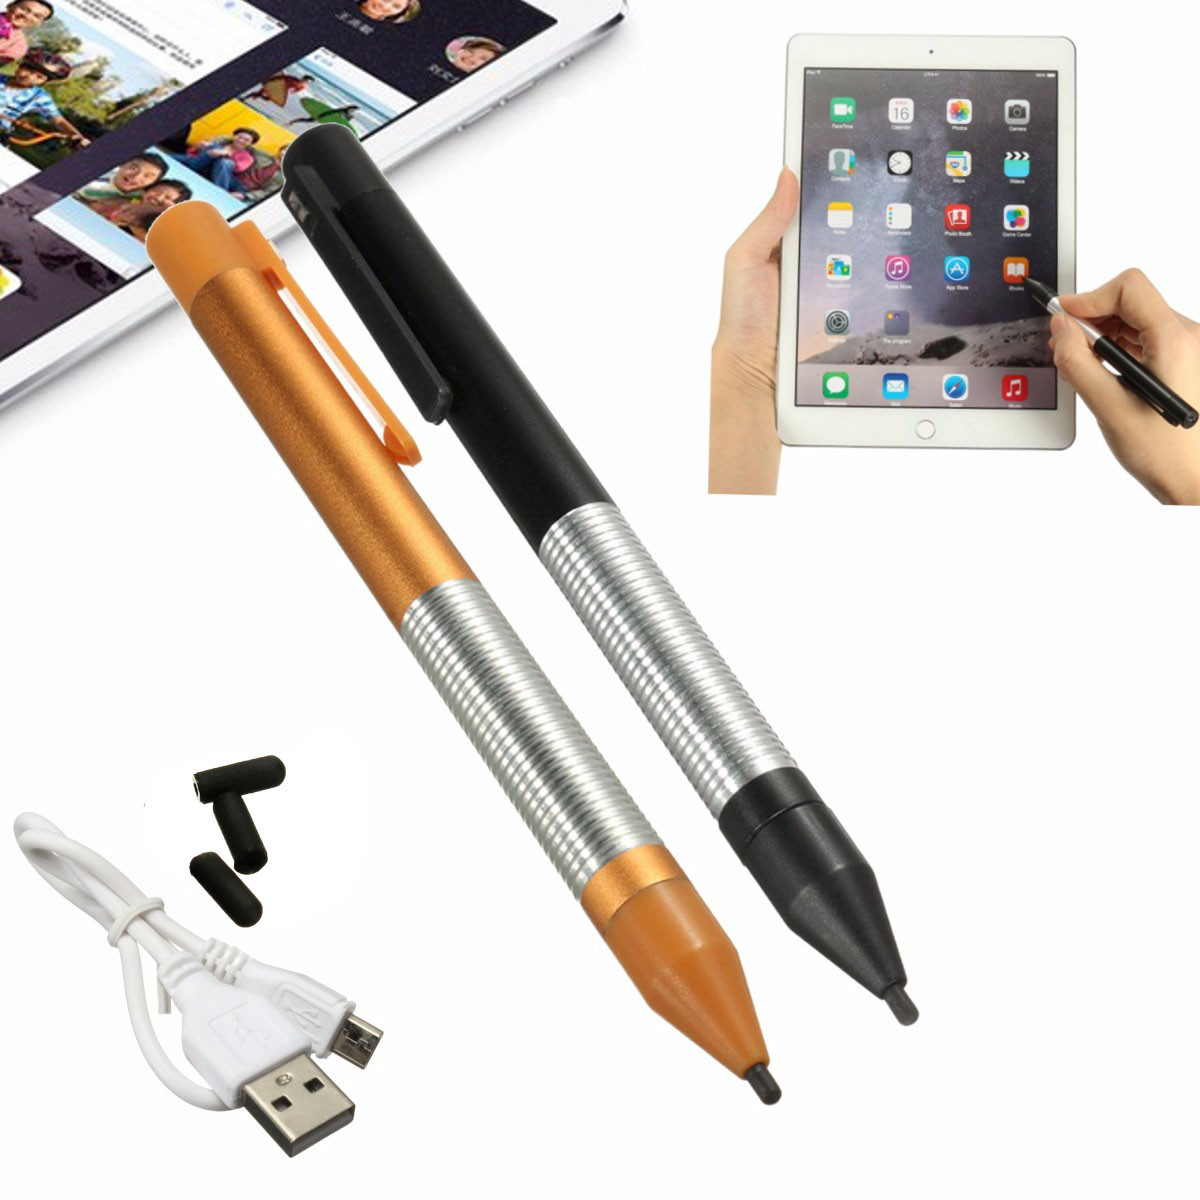 Universal 2.4mm Fine Tip Active Capacitive Touch Stylus Pen Pencil Aluminum Alloy Drawing Pencil For IPad Android Tablet Phone